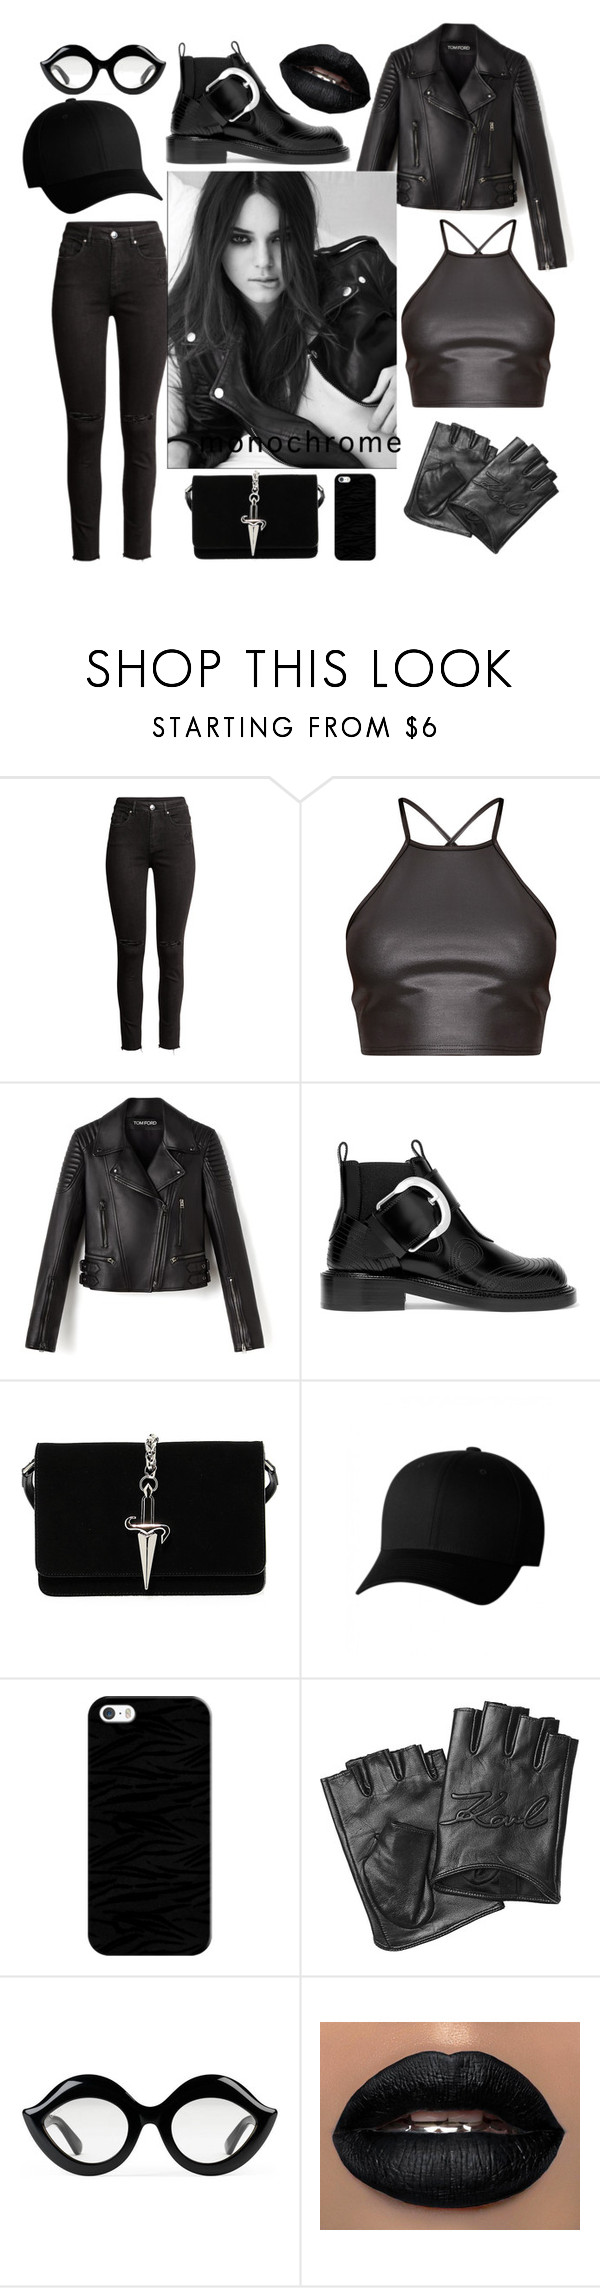 """""""Black List"""" by naomicunsolo ❤ liked on Polyvore featuring H&M, Maison Margiela,"""